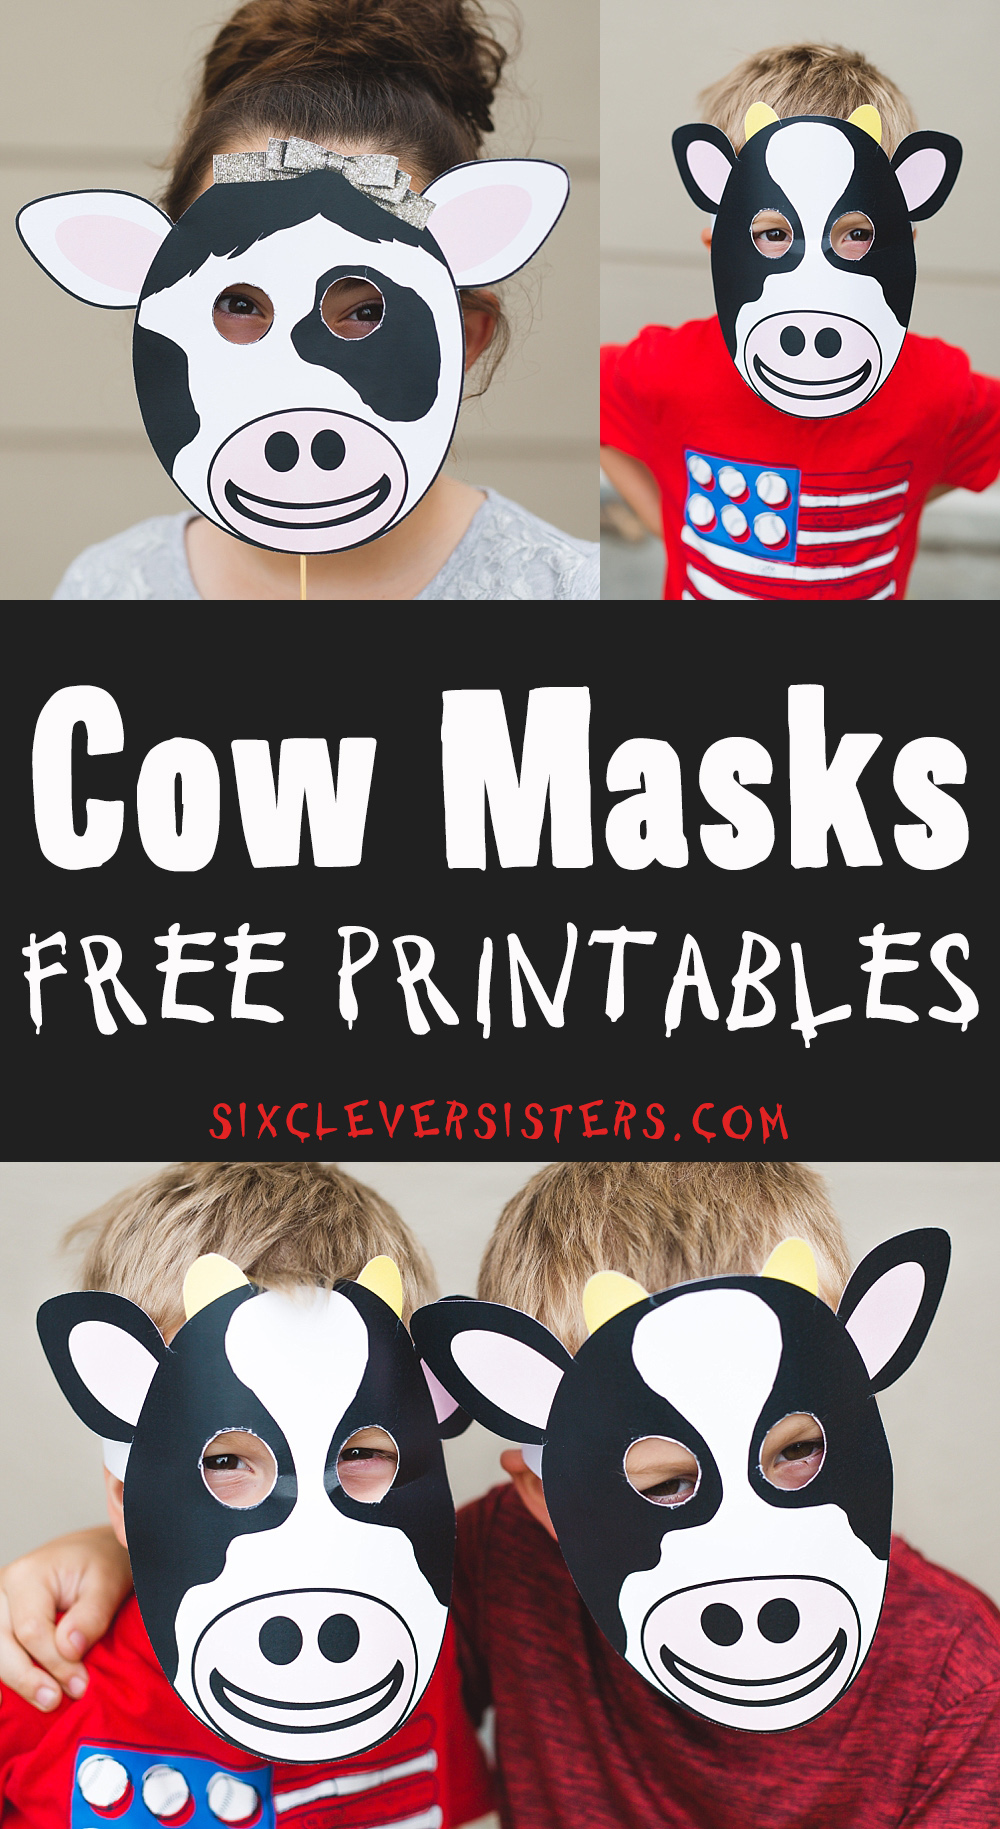 photo about Chick Fil a Cow Appreciation Day Printable named Chick Fil A Cow Mask - 6 Smart Sisters